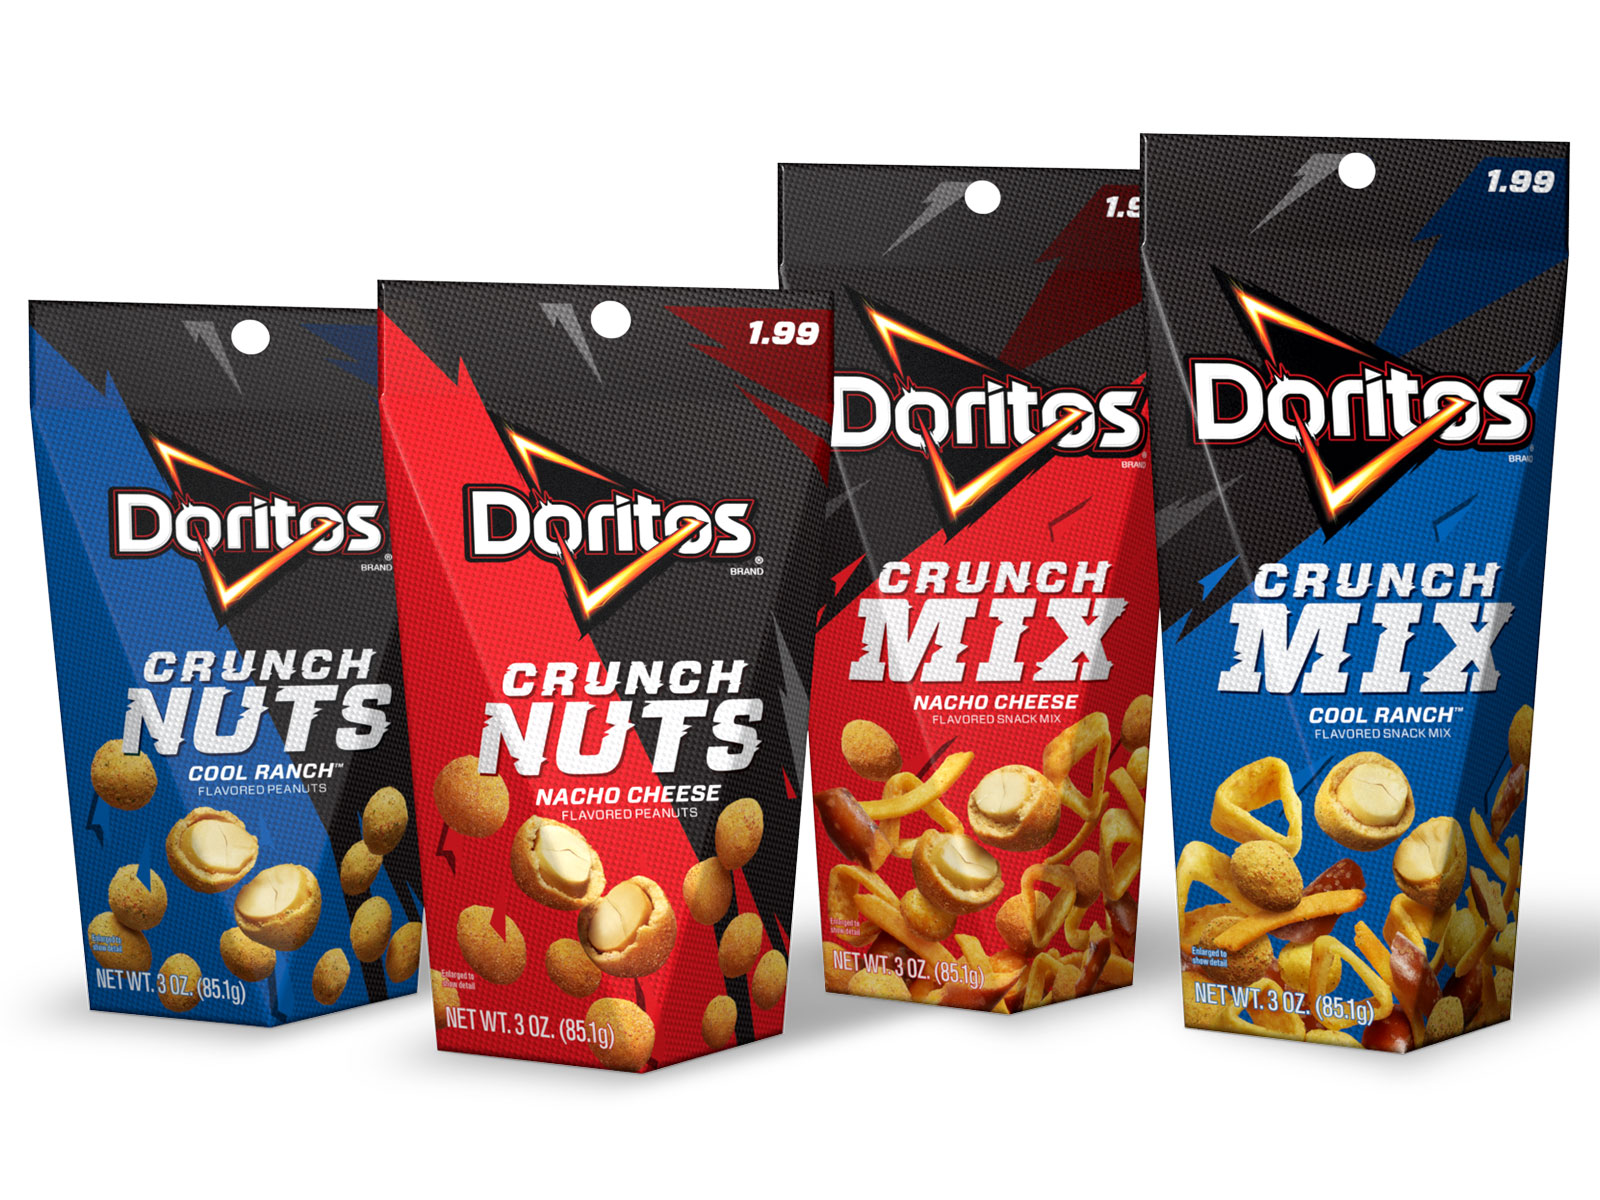 doritos crunch nuts and mix